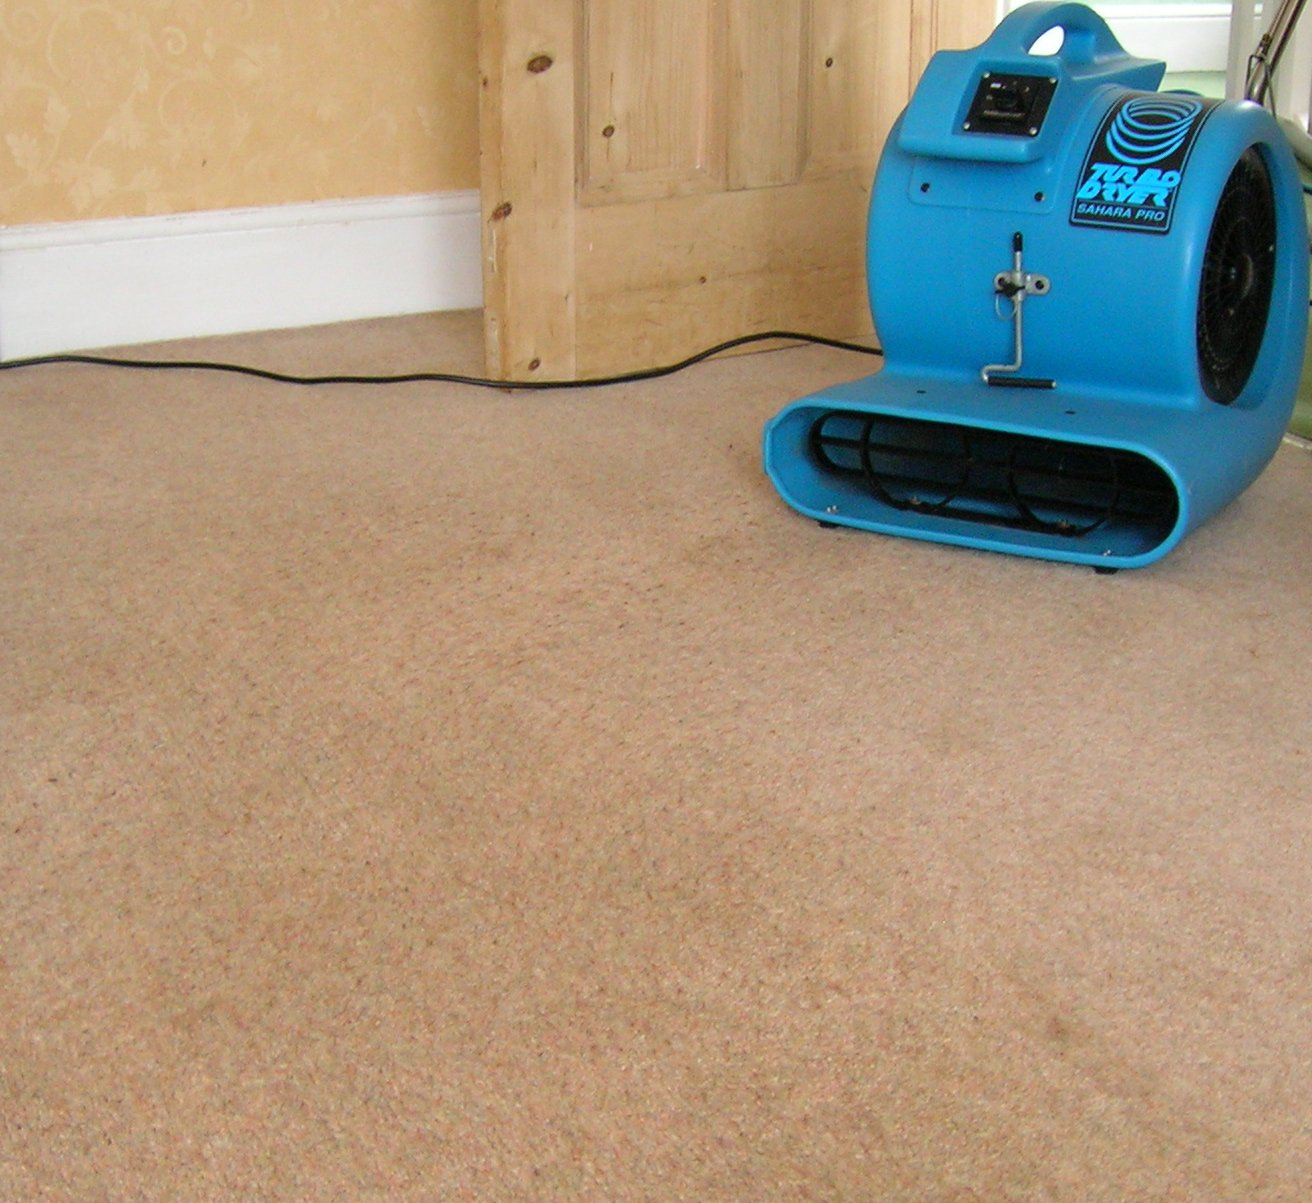 An air blower drying the freshly cleaned carpet